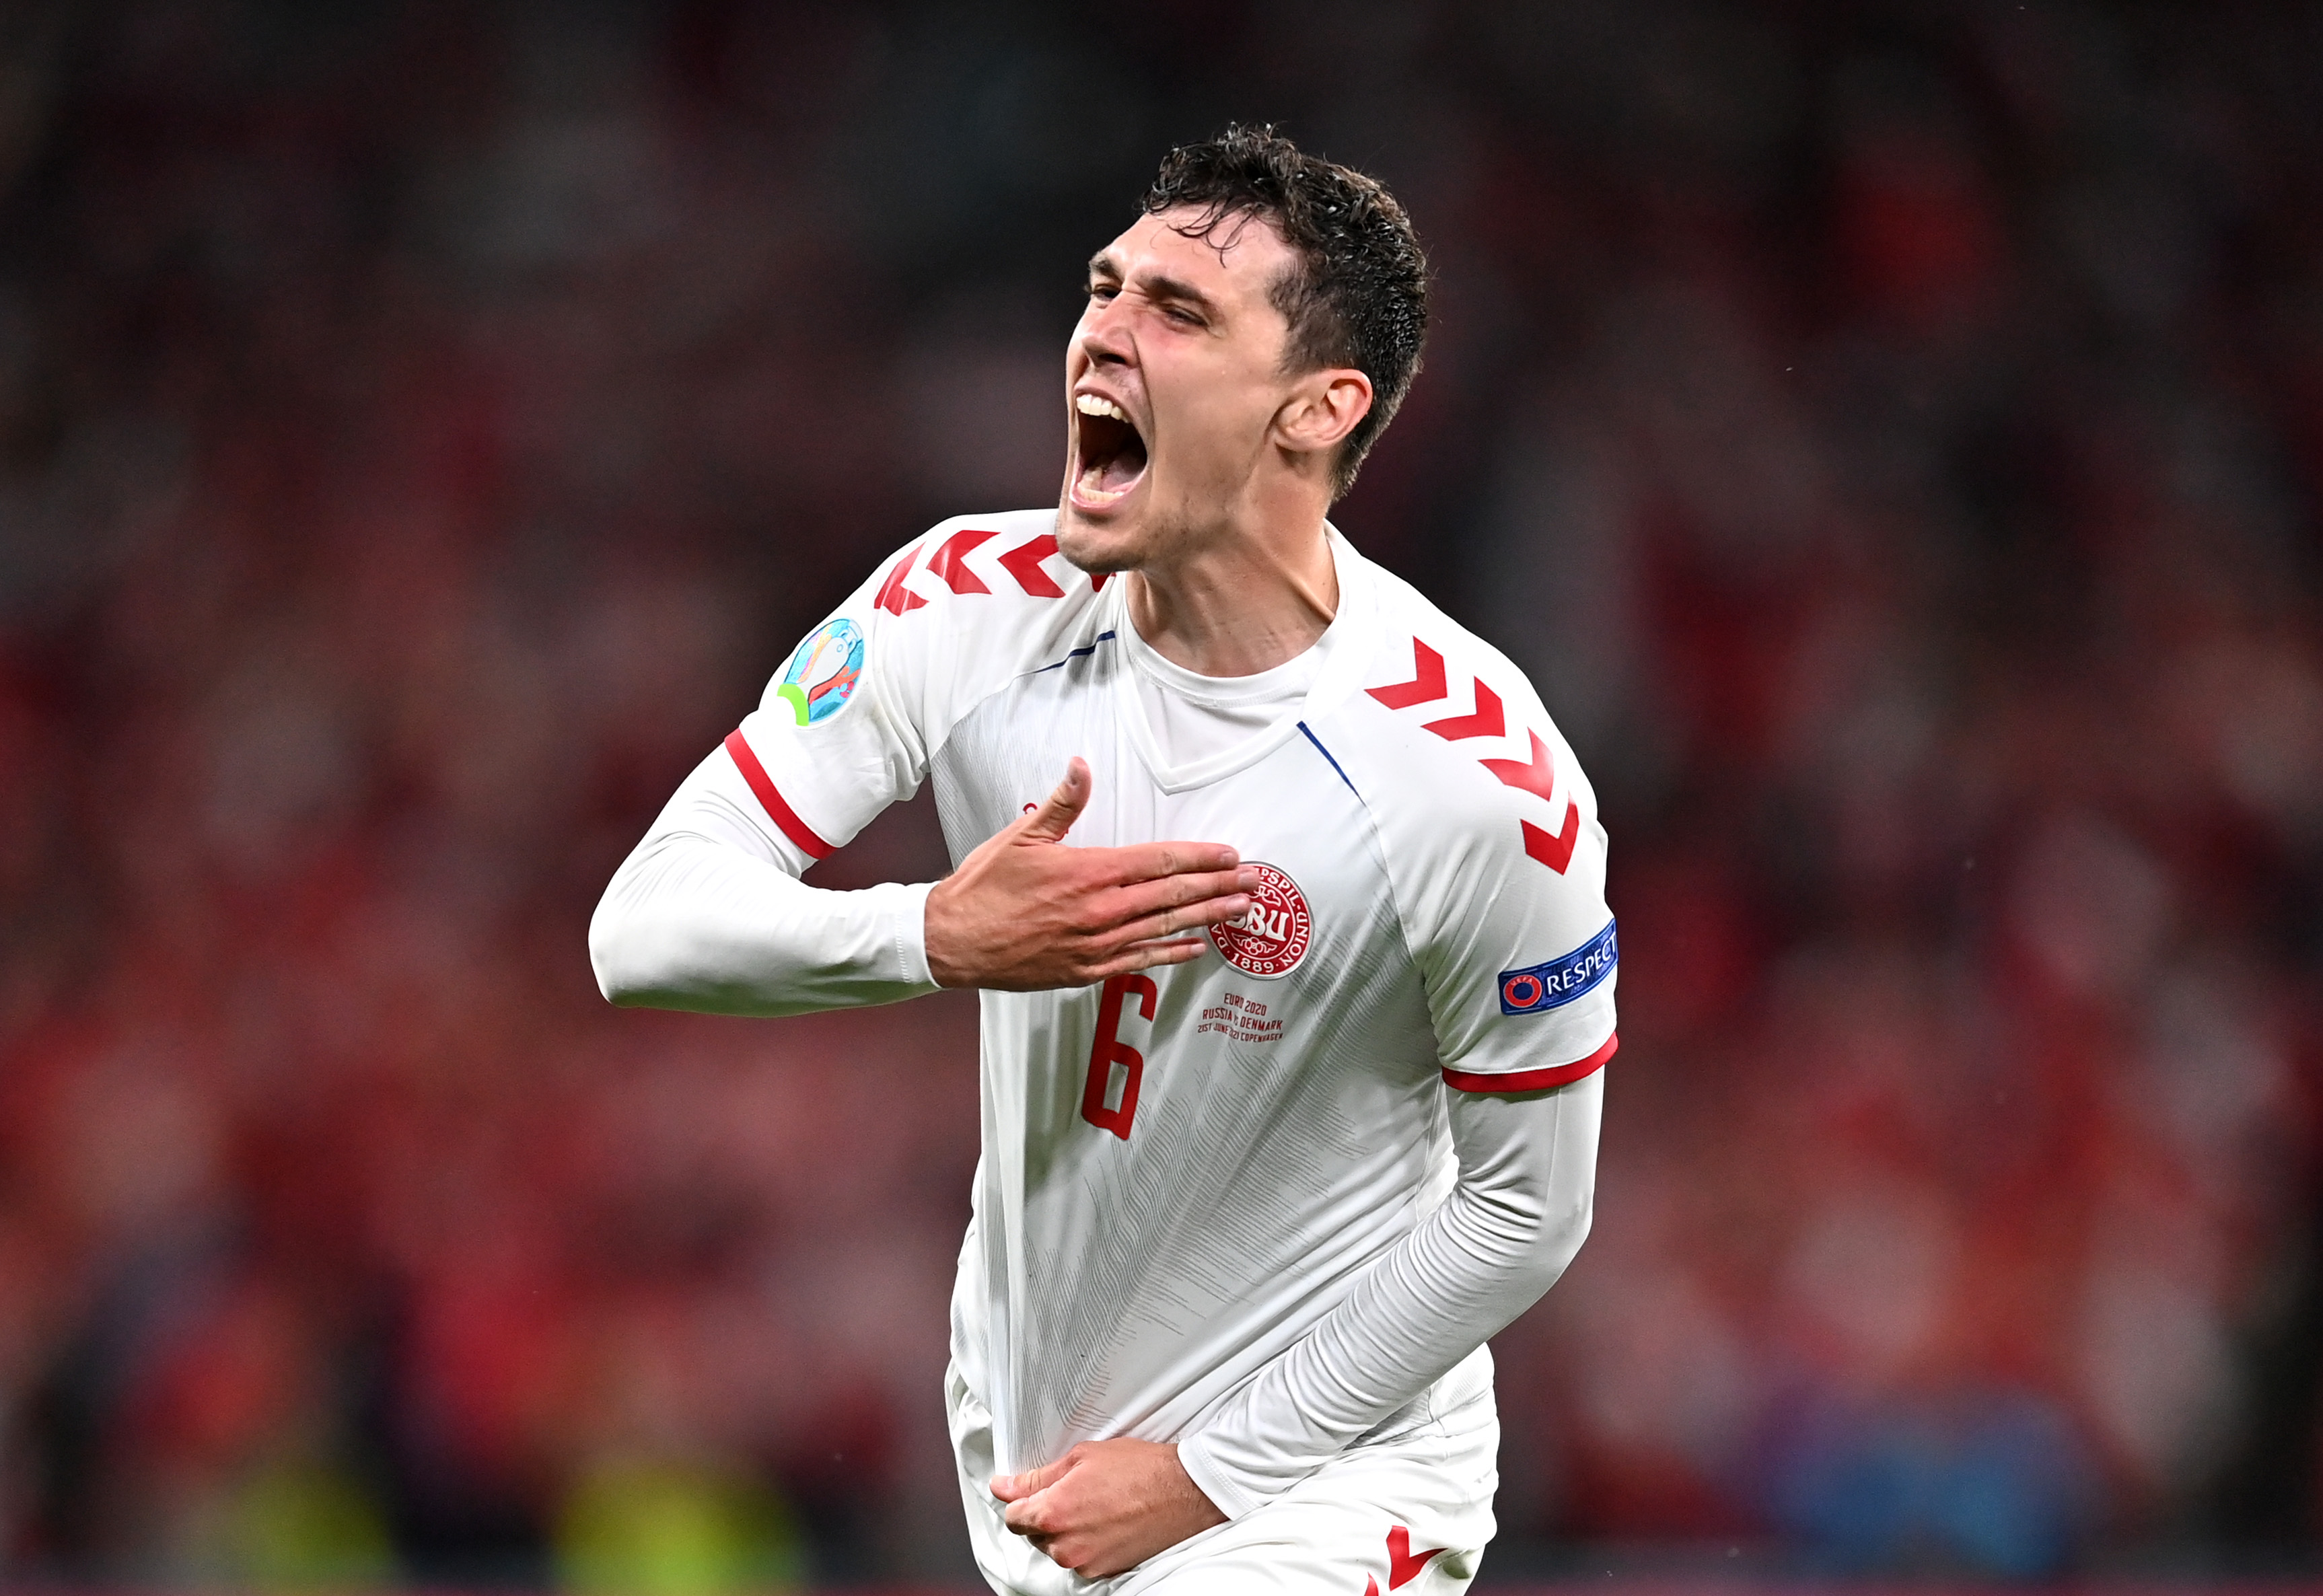 Euro 2020: Fairytale comes true as Denmark grabs place in knockout stages